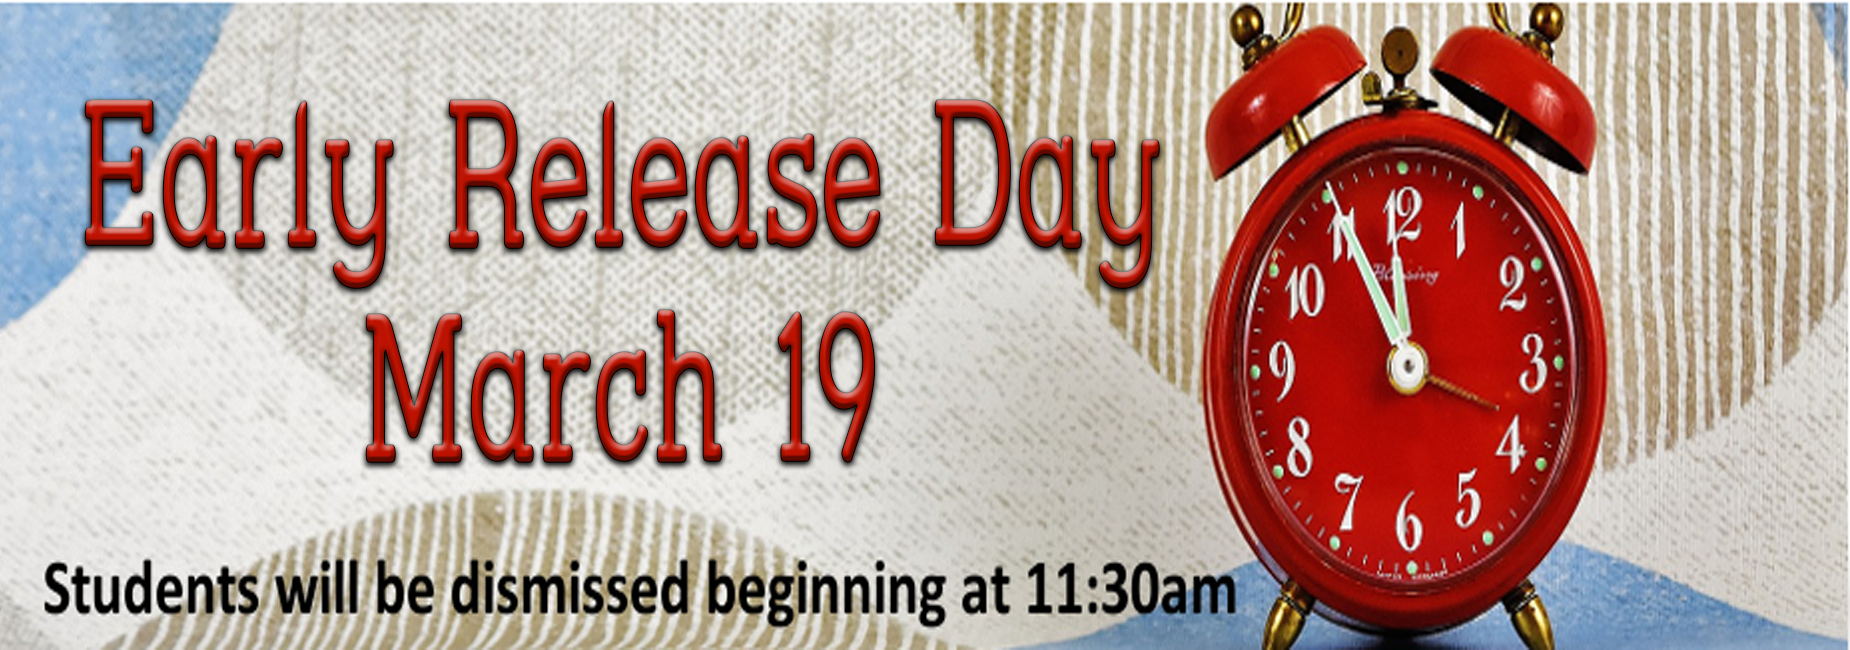 Early Release Day March 19th